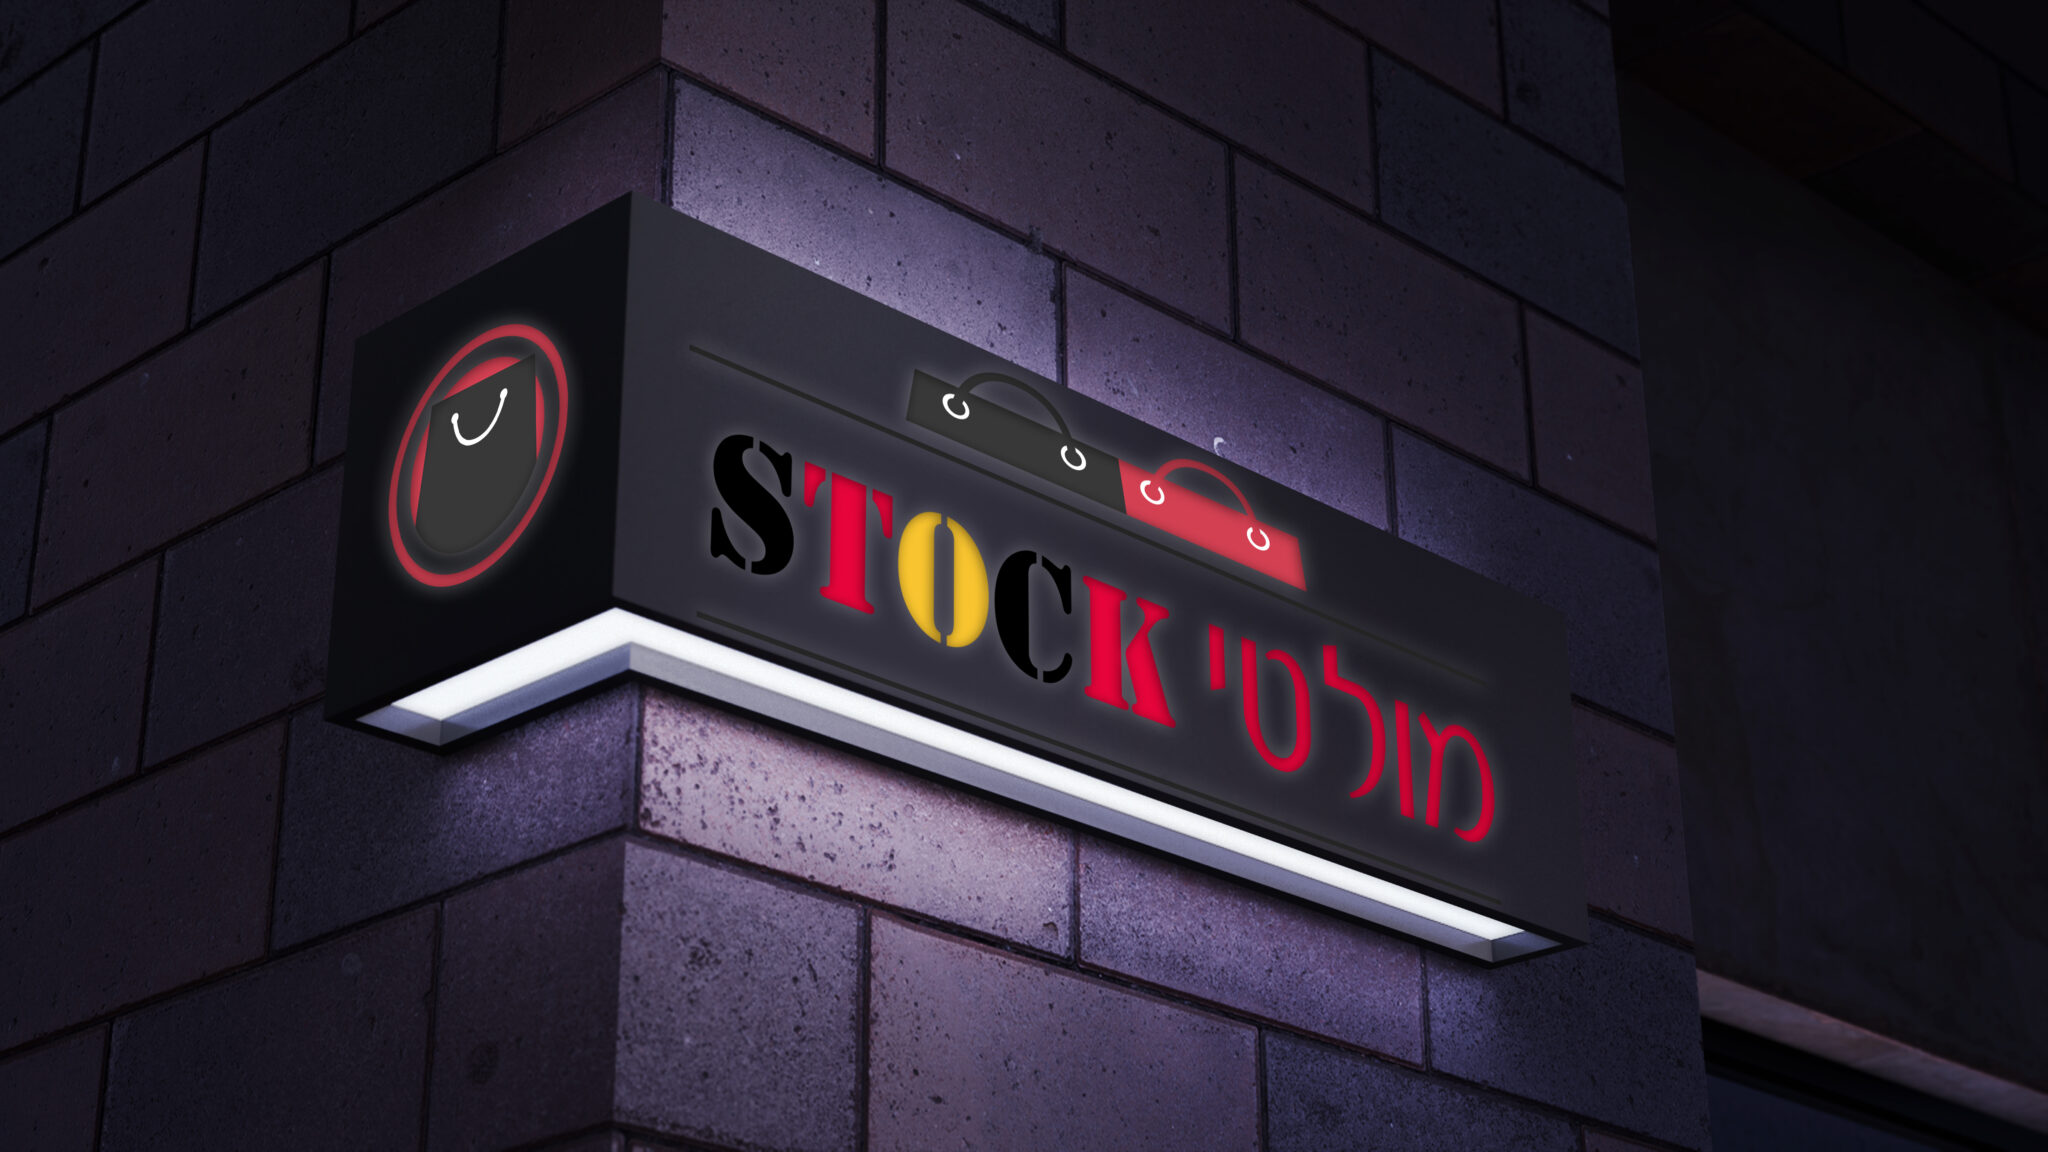 Signage logo mockup on corner facade or storefront with night lighting and editable light color